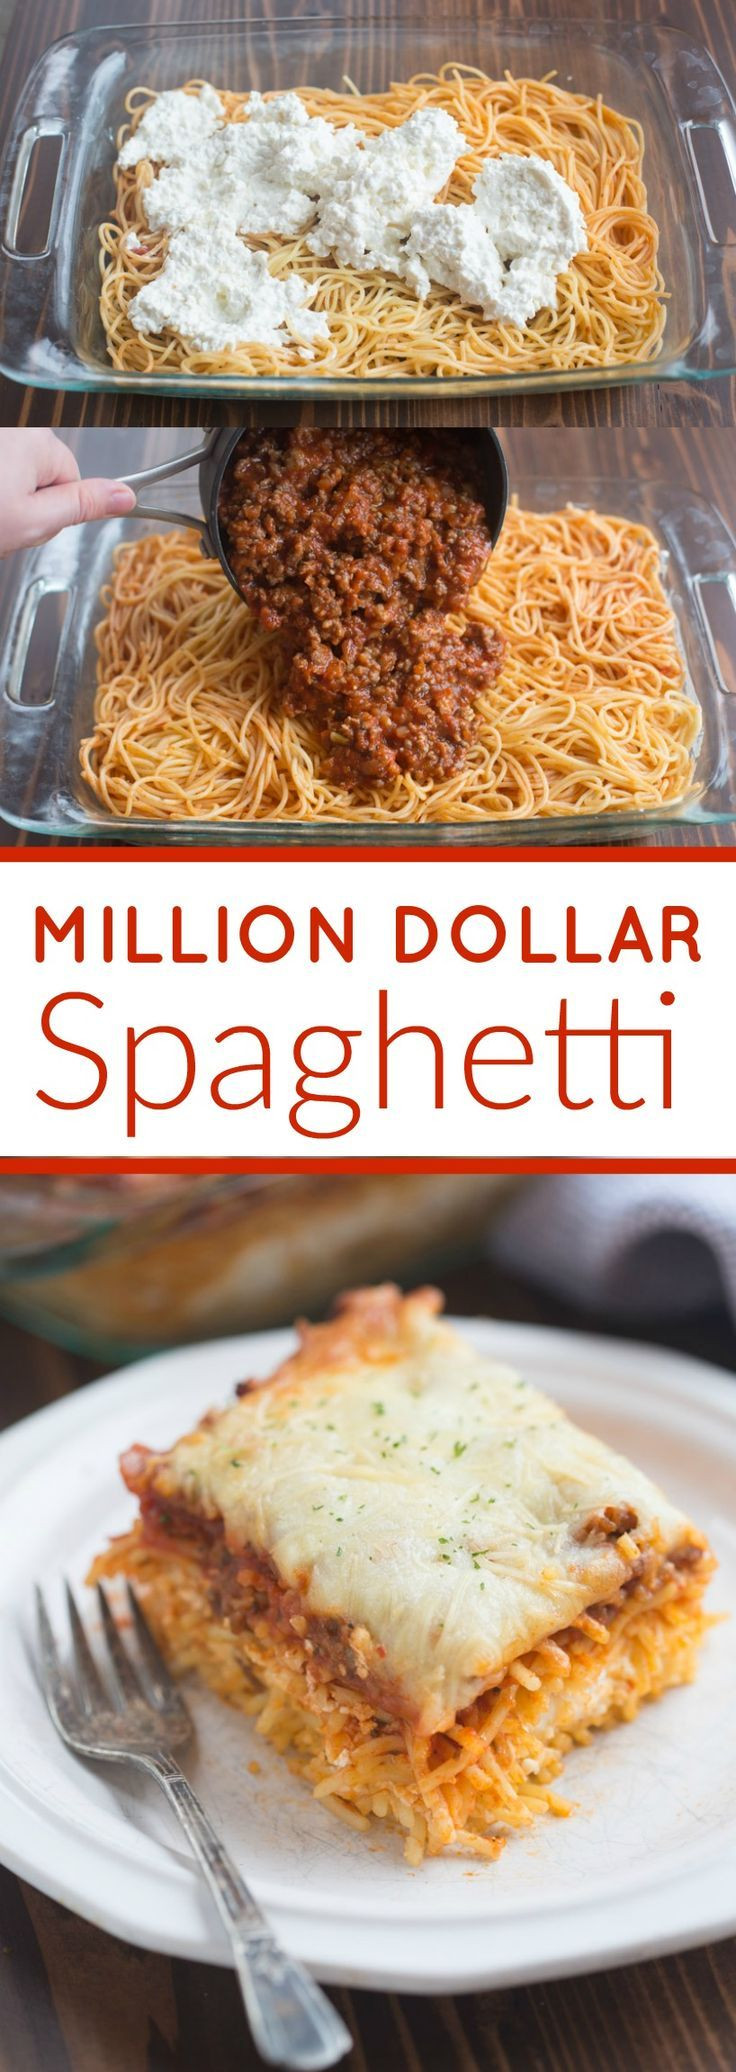 Easy Yummy Dinners  Food Inspiration Million Dollar Spaghetti is a DELICIOUS